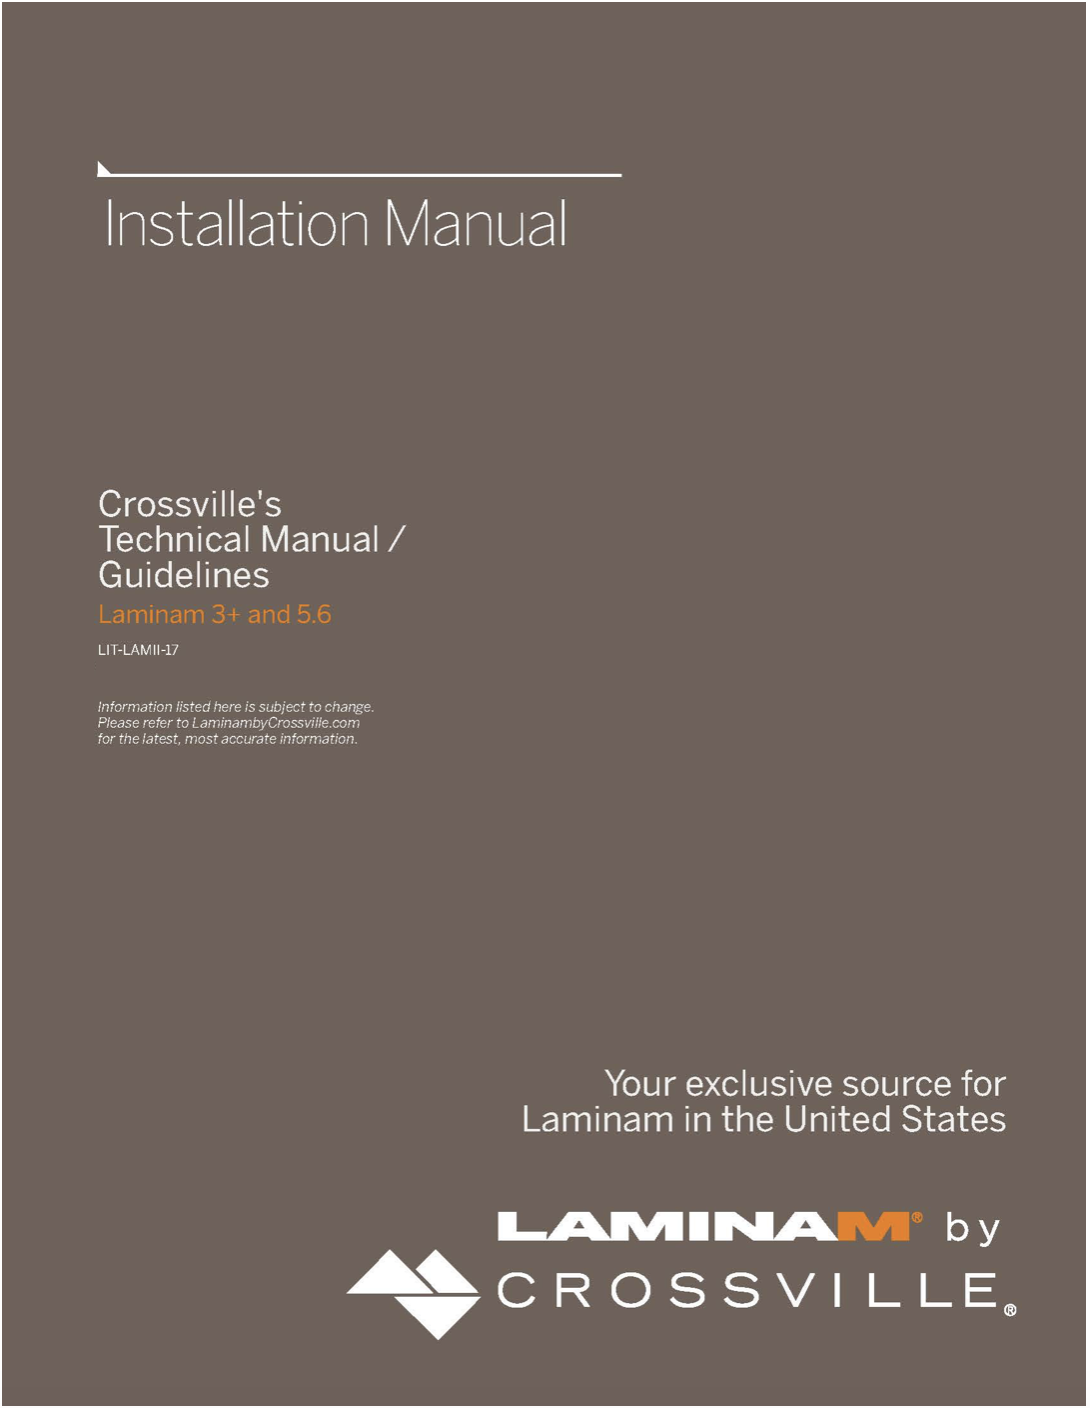 Installation Manual Cover Crossville GPTP